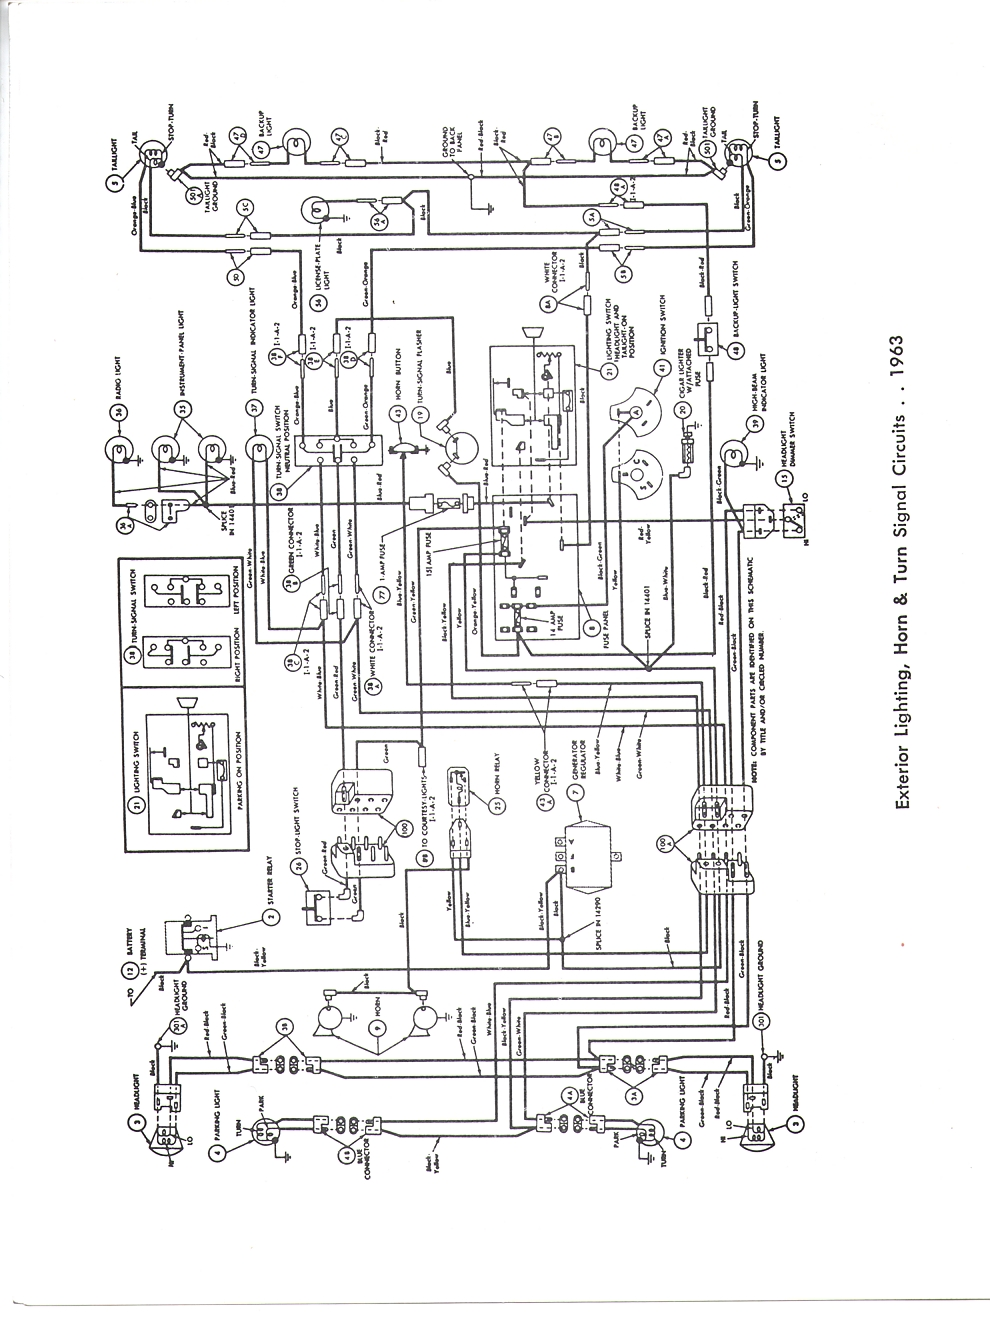 1969 Ford Headlight Switch Wiring Diagram Diagram Base